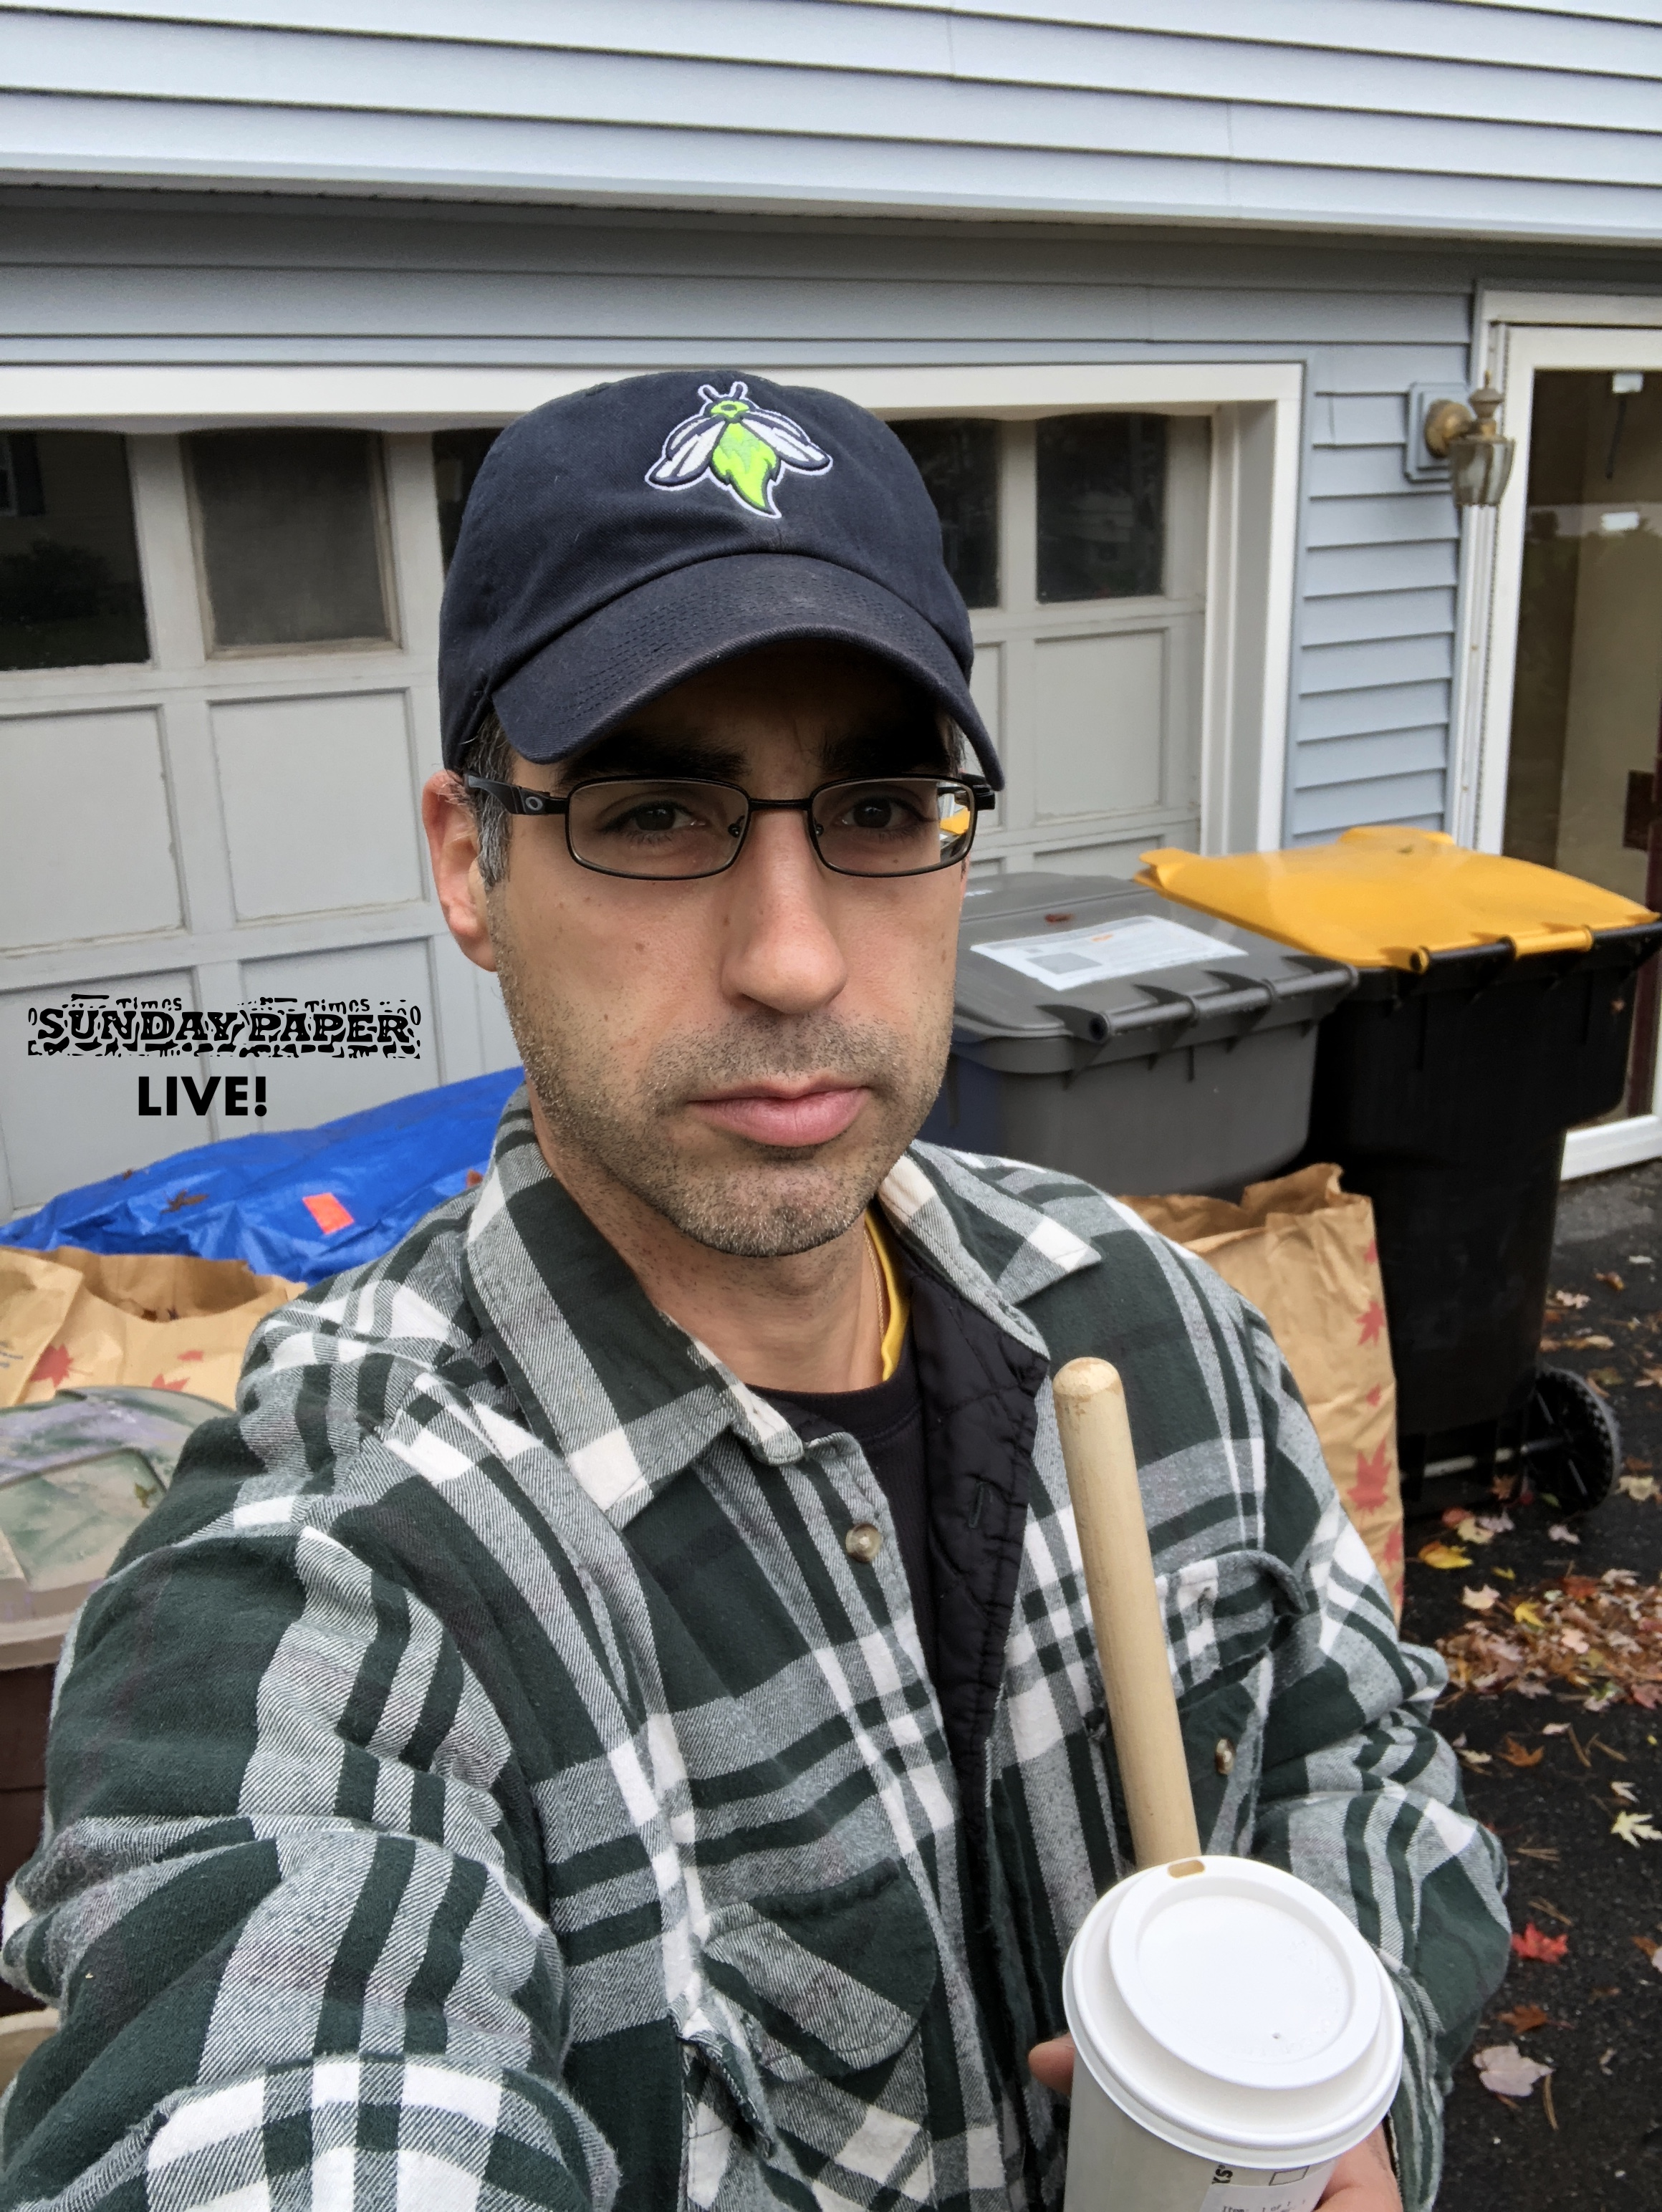 Yes, I'm reusing the Sunday Paper Live picture of me raking because I haven't taken another picture - I'm too busy RAKING! (But rest assured, I do wear the same thing every single time I rake, so it would pretty much look just like this.)